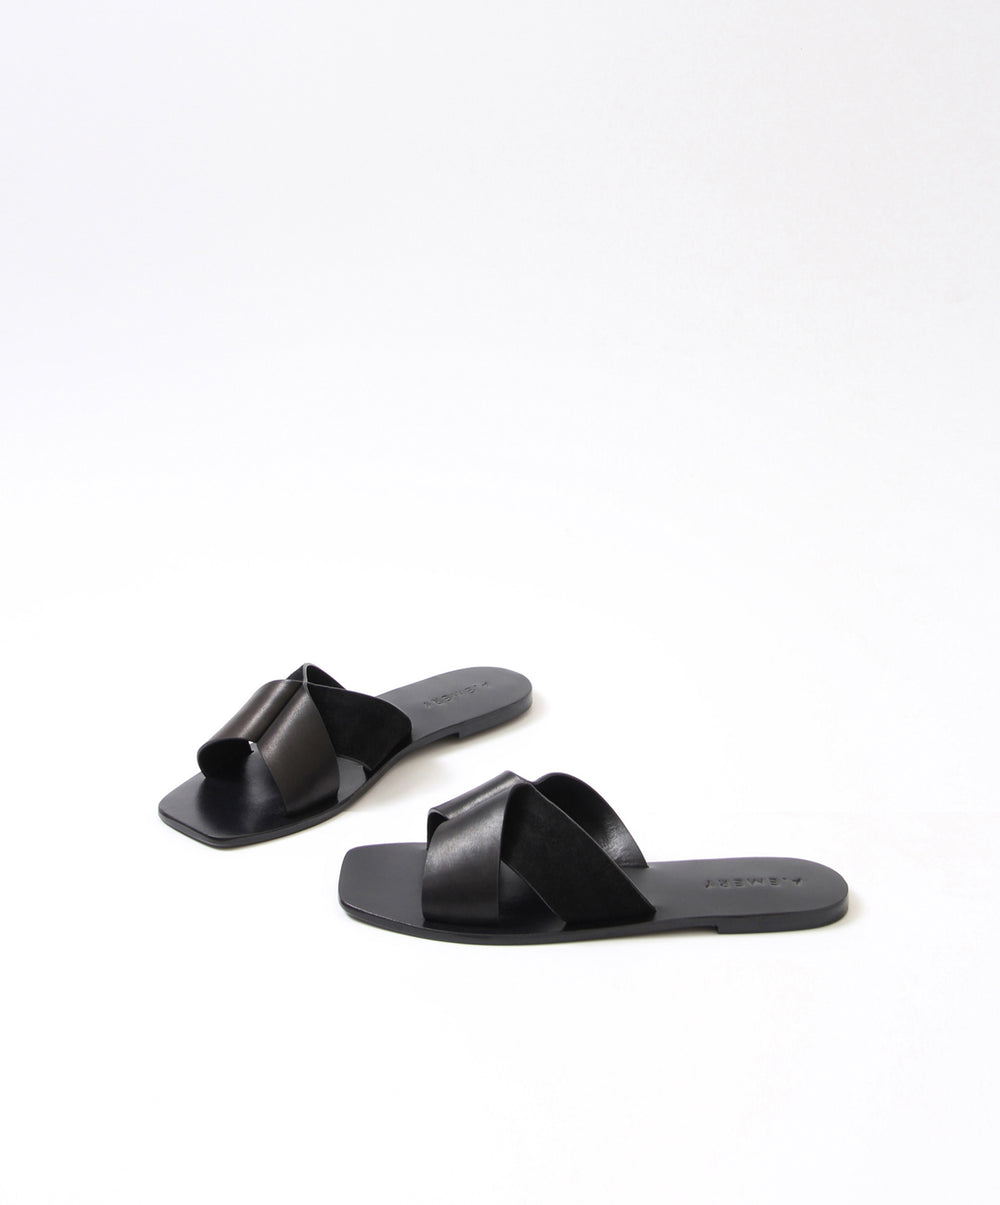 The Ada Sandal